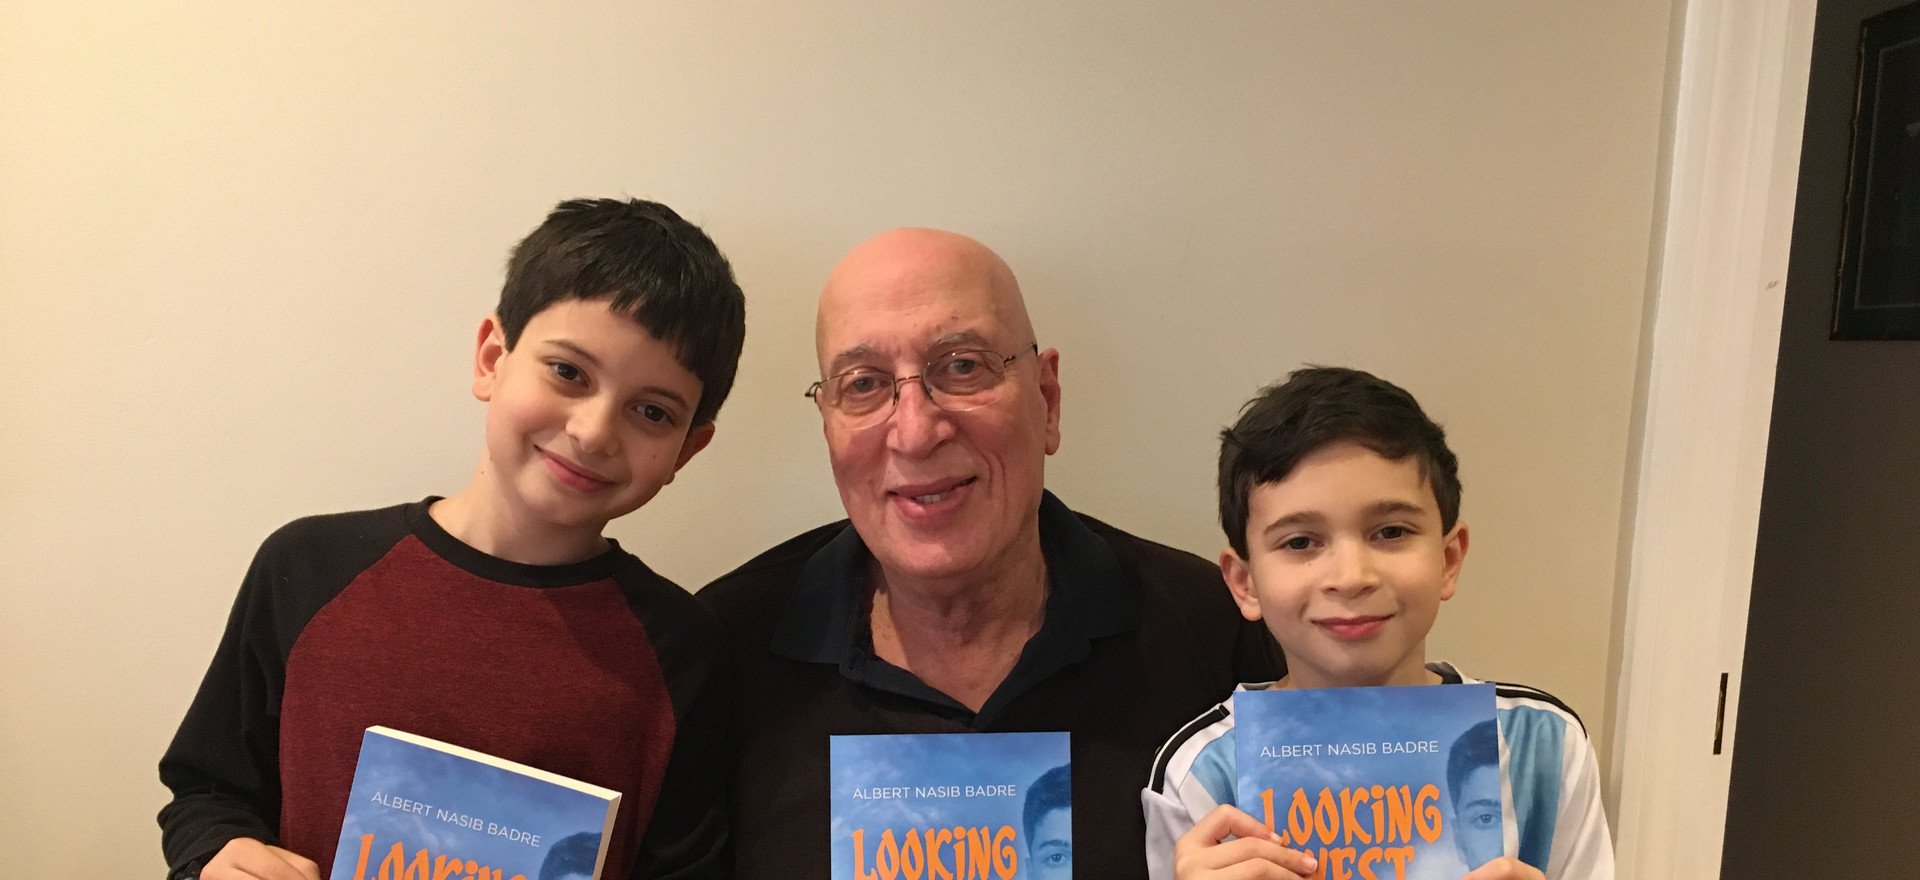 Announcing Book Release with Shawn and james